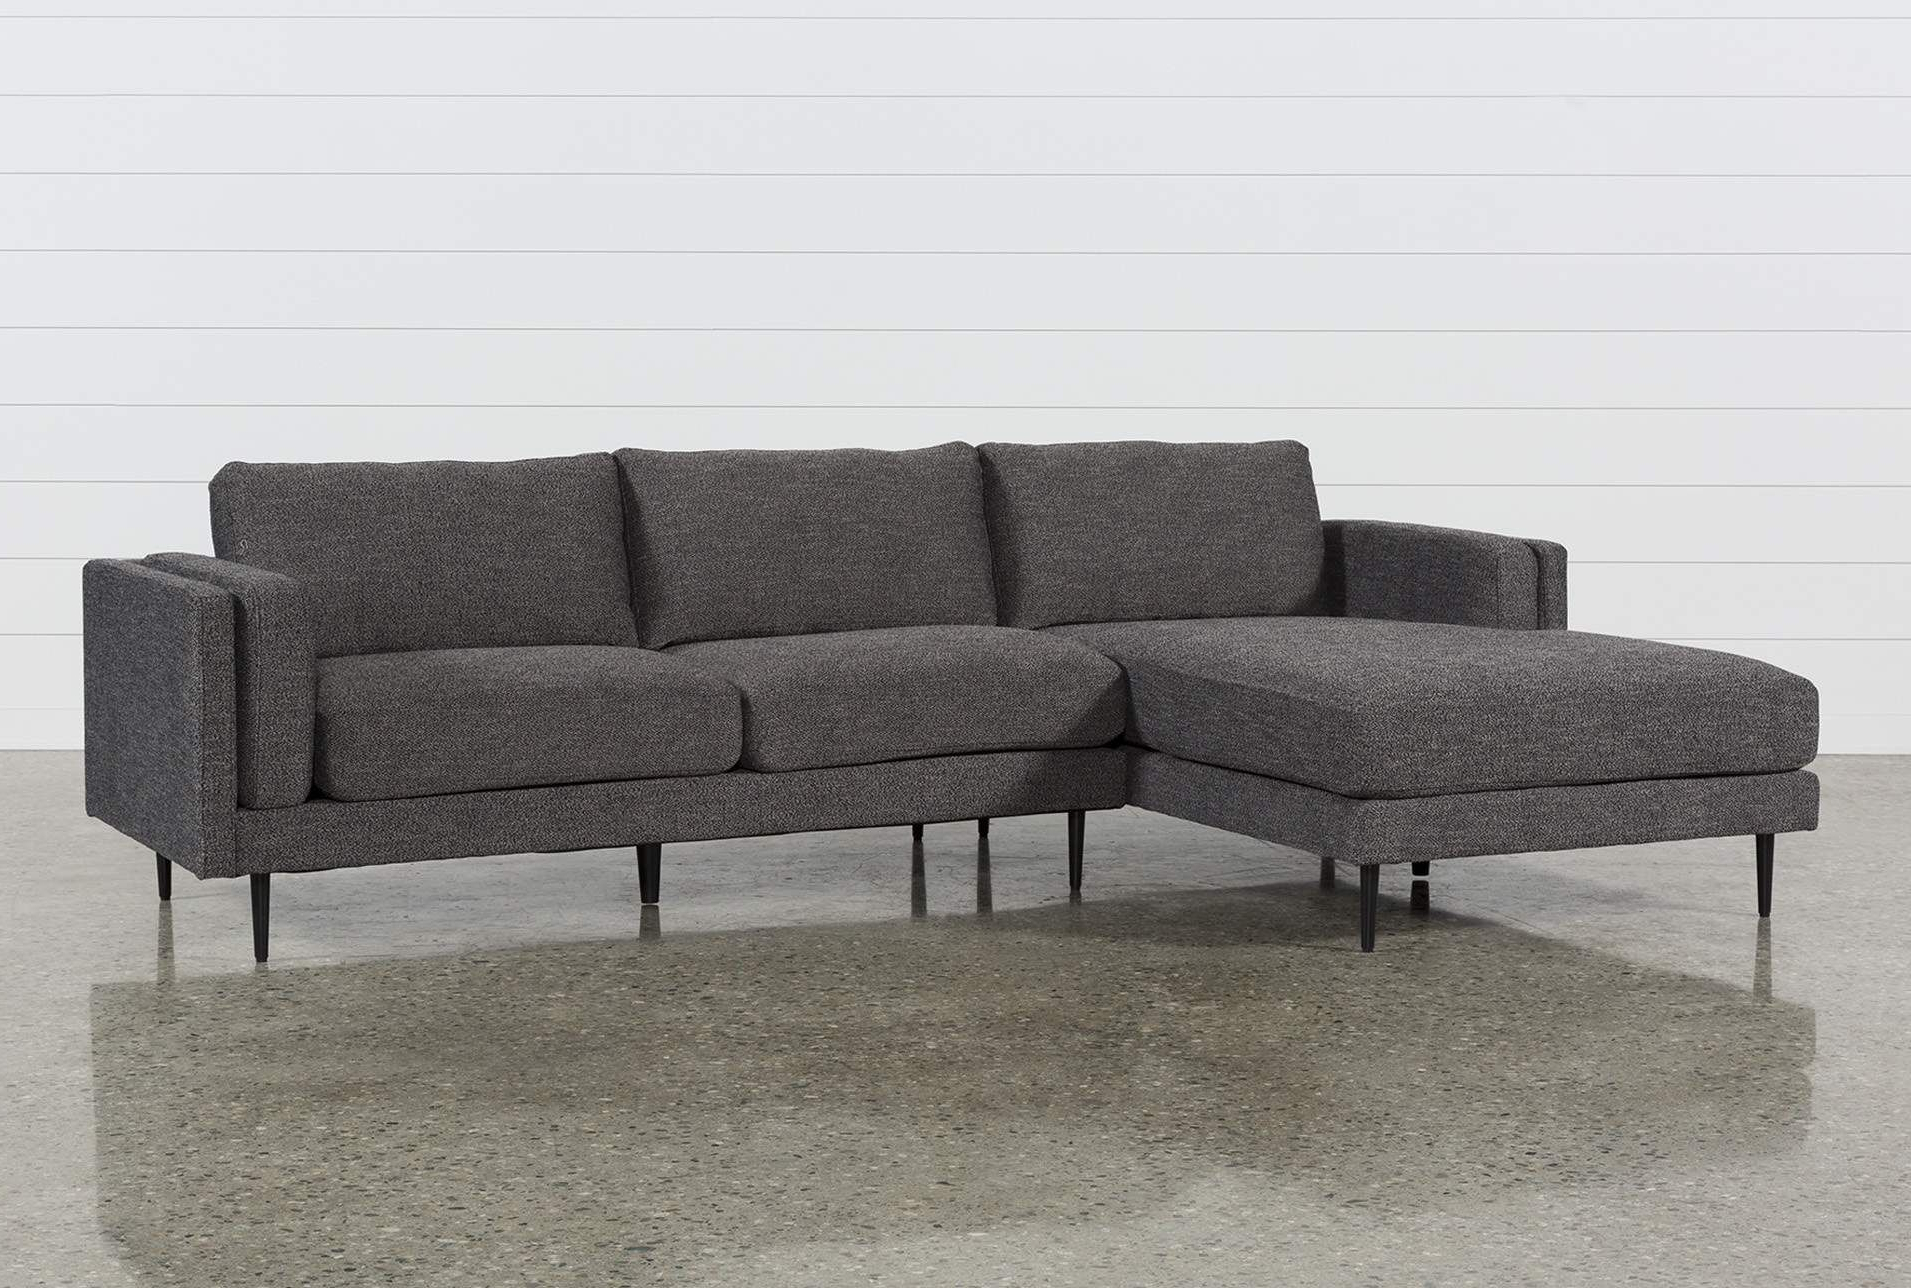 Widely Used Turdur 2 Piece Sectionals With Laf Loveseat Pertaining To Aquarius Dark Grey 2 Piece Sectional W/laf Chaise (View 12 of 20)